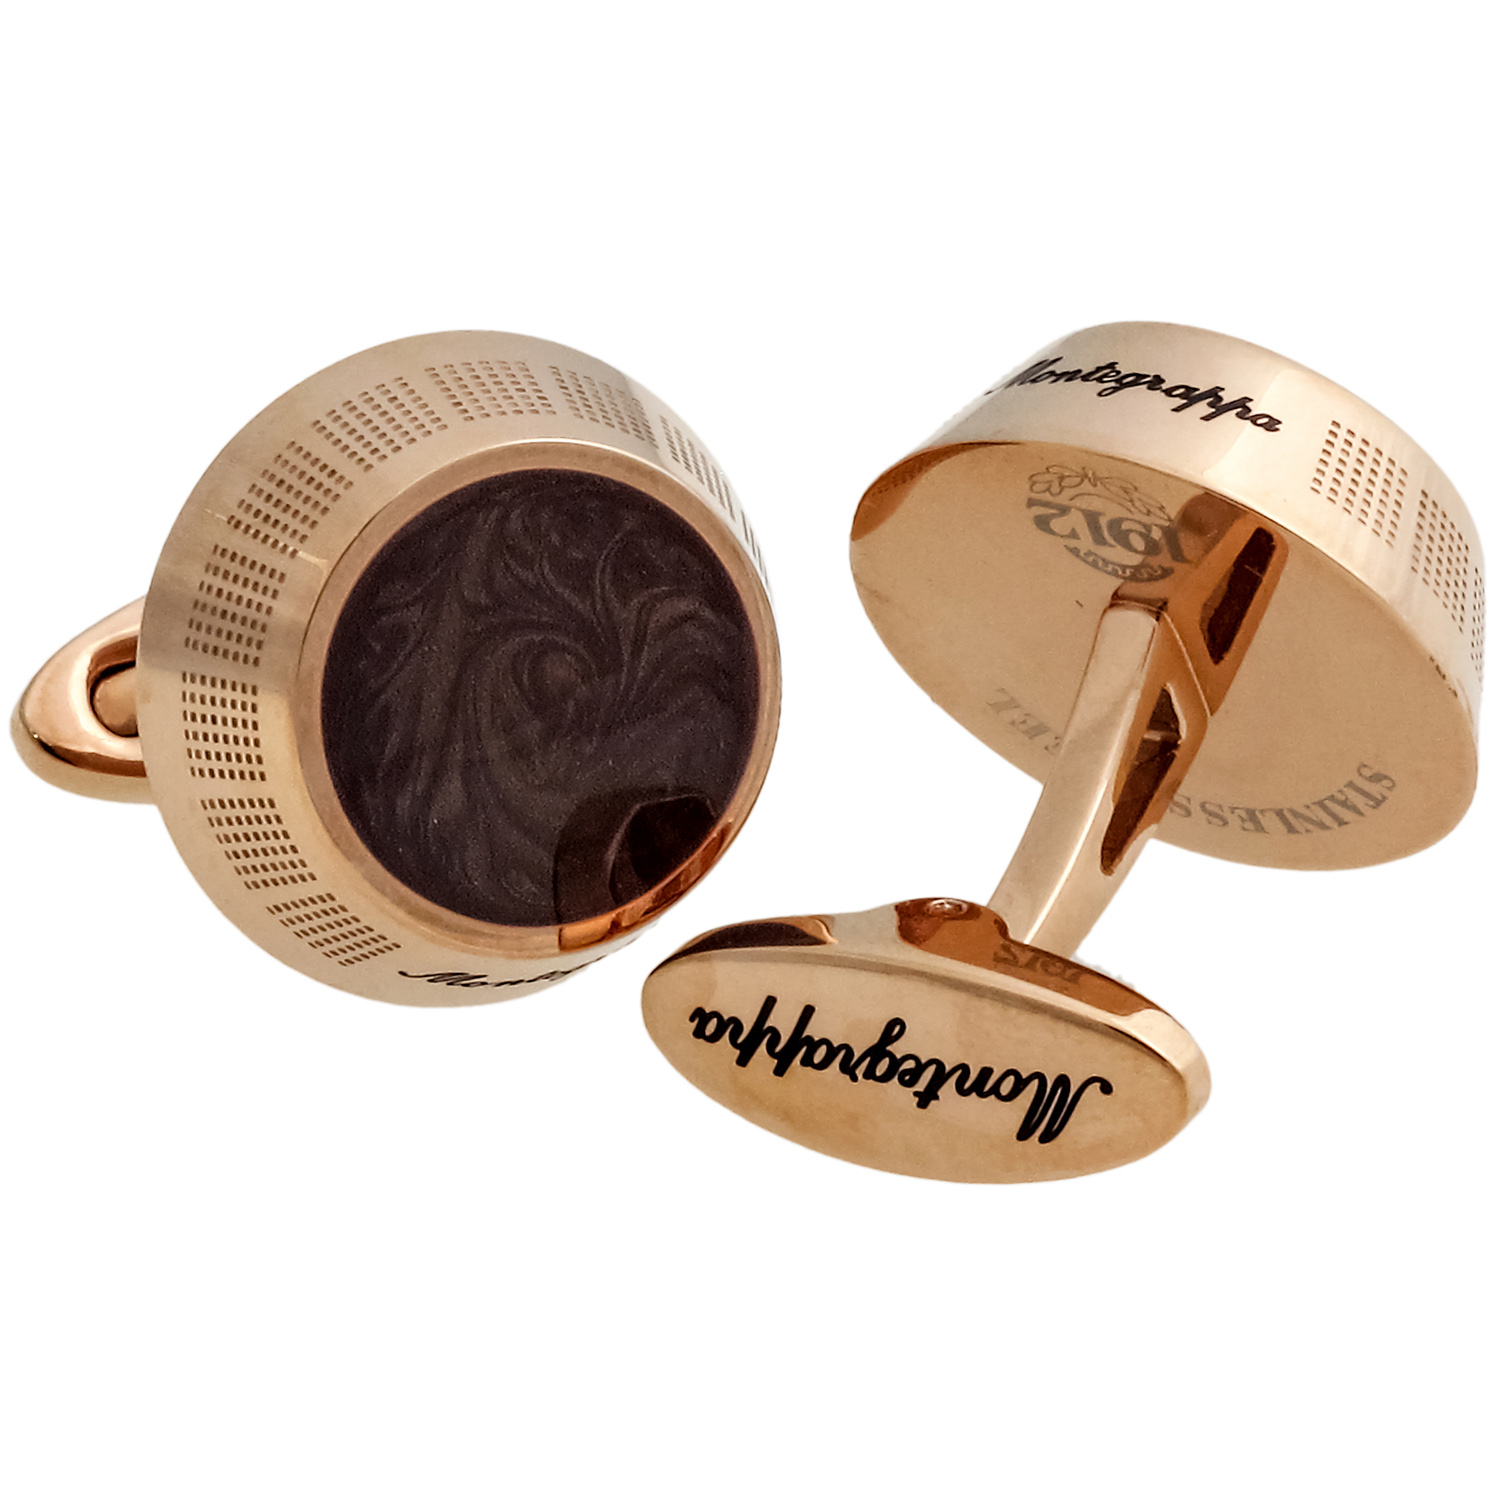 Miya 14K Rose Gold PVD Plated Brass & Brown Enamel Cufflinks IDMYCLMR